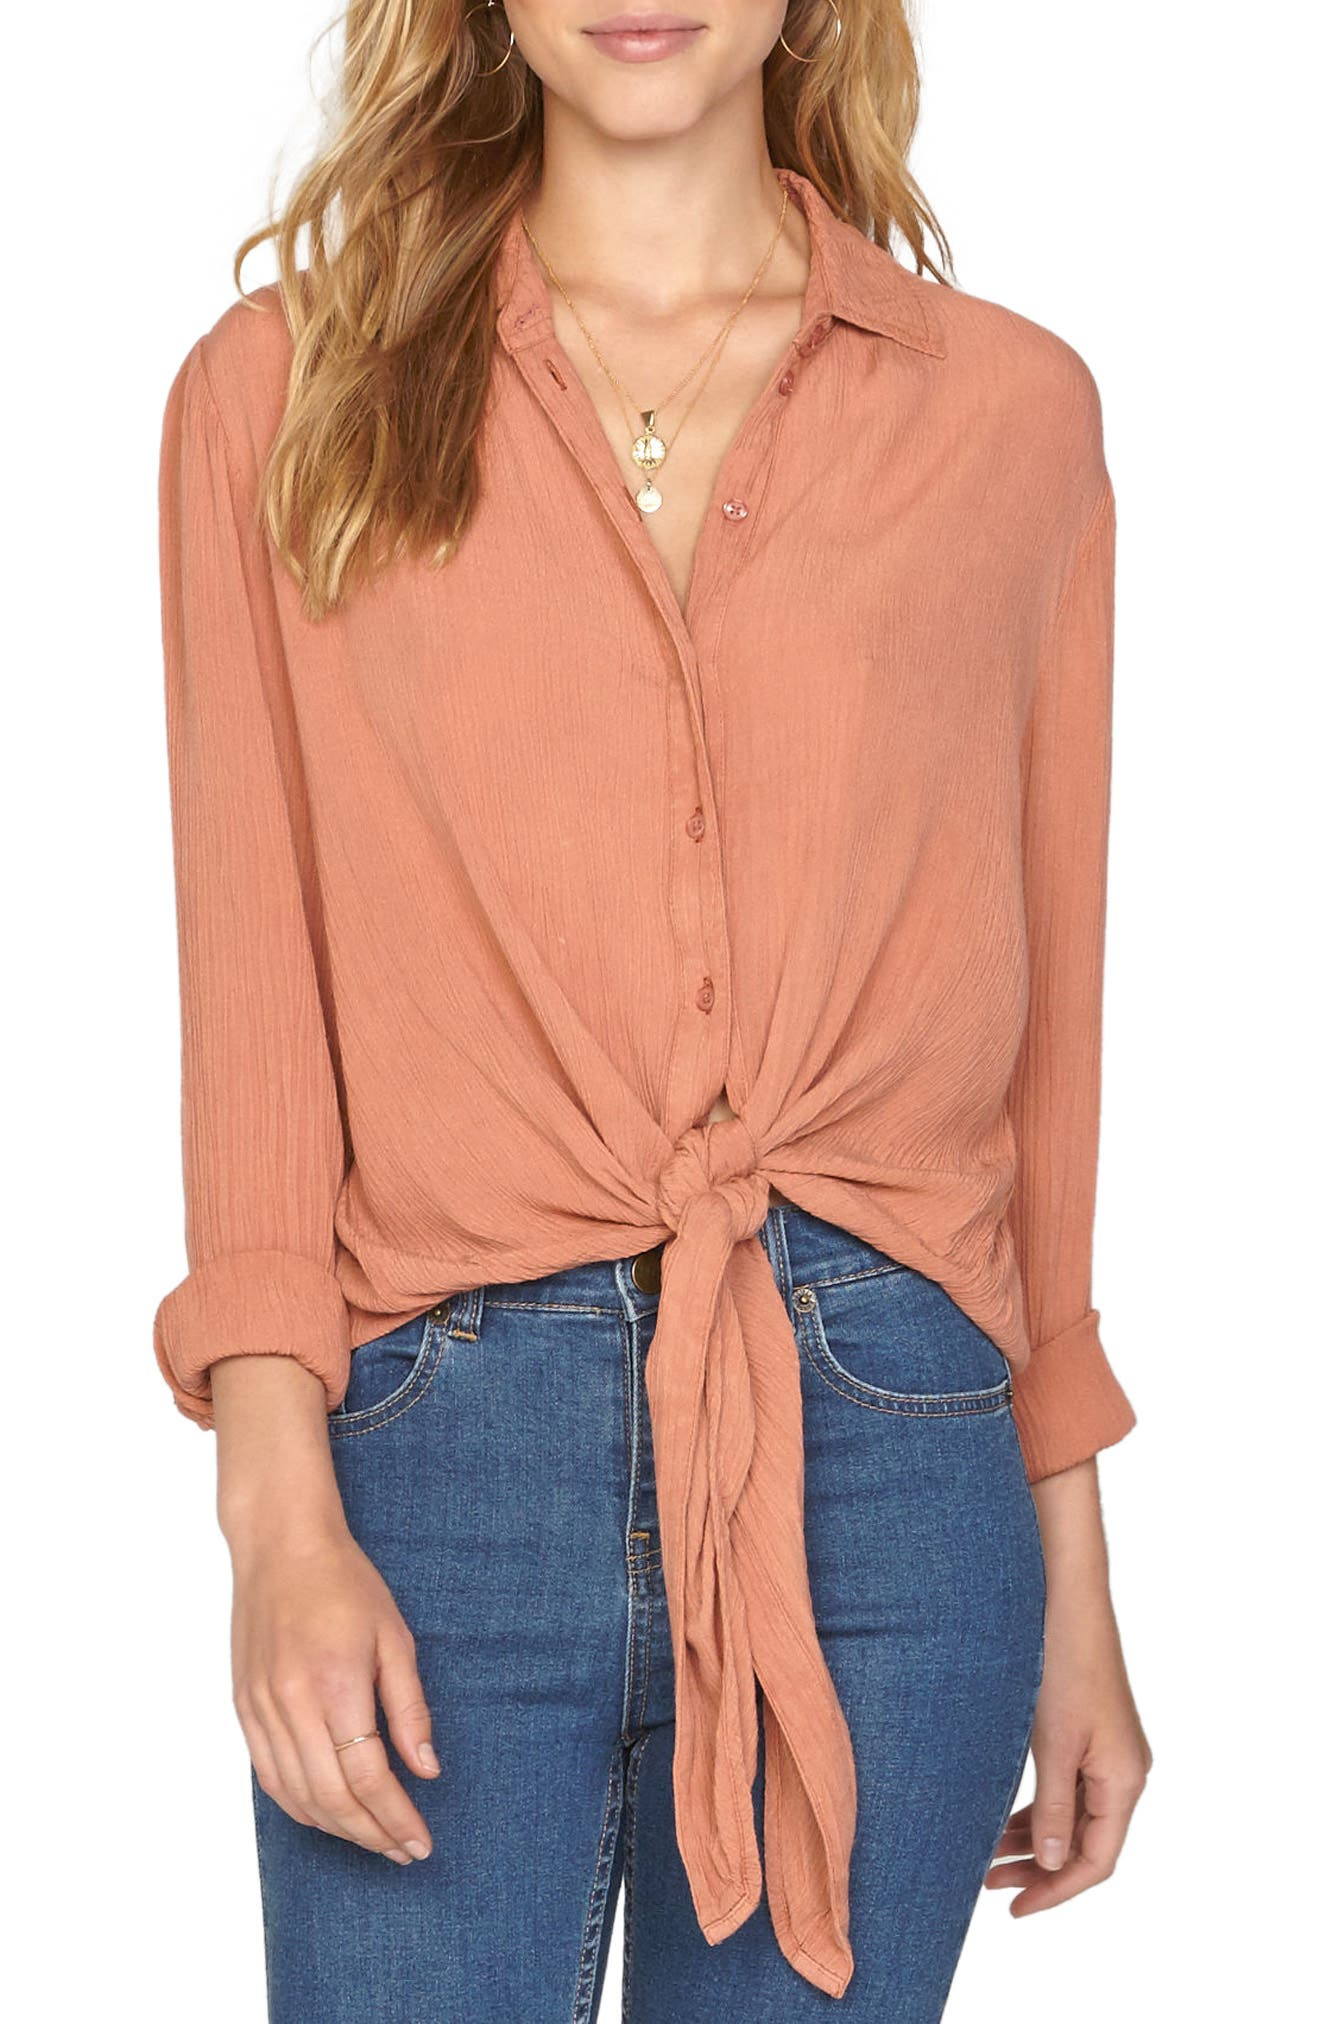 C'est La Vie Knotted Shirt,                             Main thumbnail 1, color,                             Rose Dawn